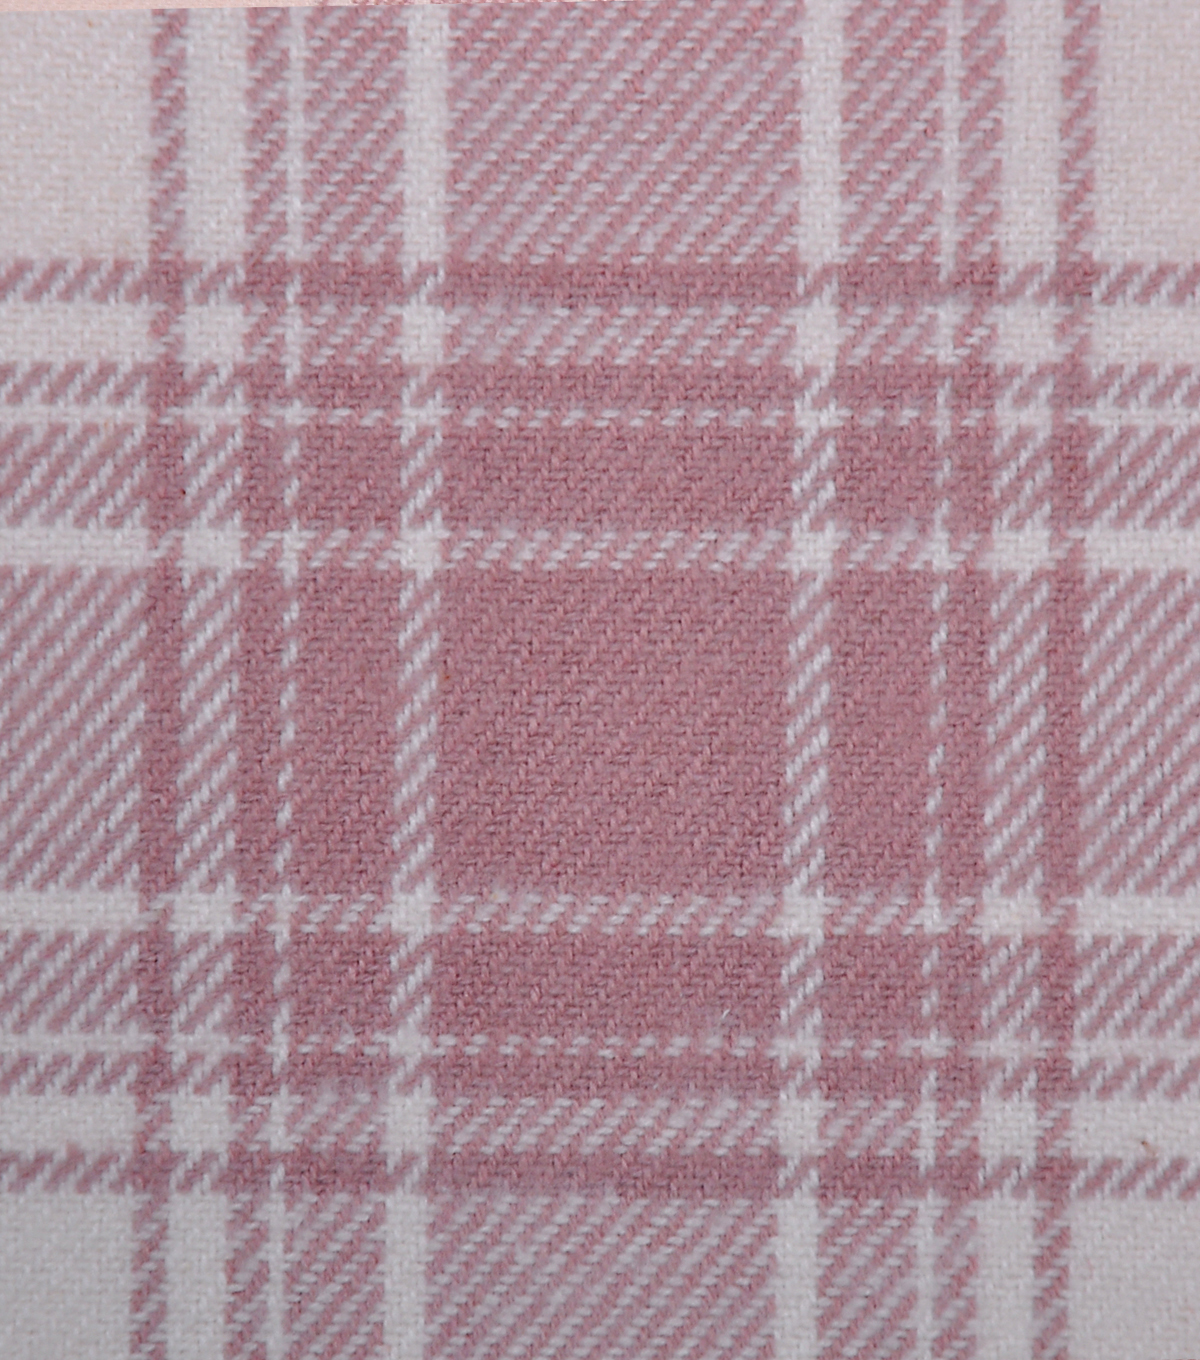 Plaiditudes Brushed Cotton Apparel Fabric 44\u0027\u0027-Cream & Pink Plaid